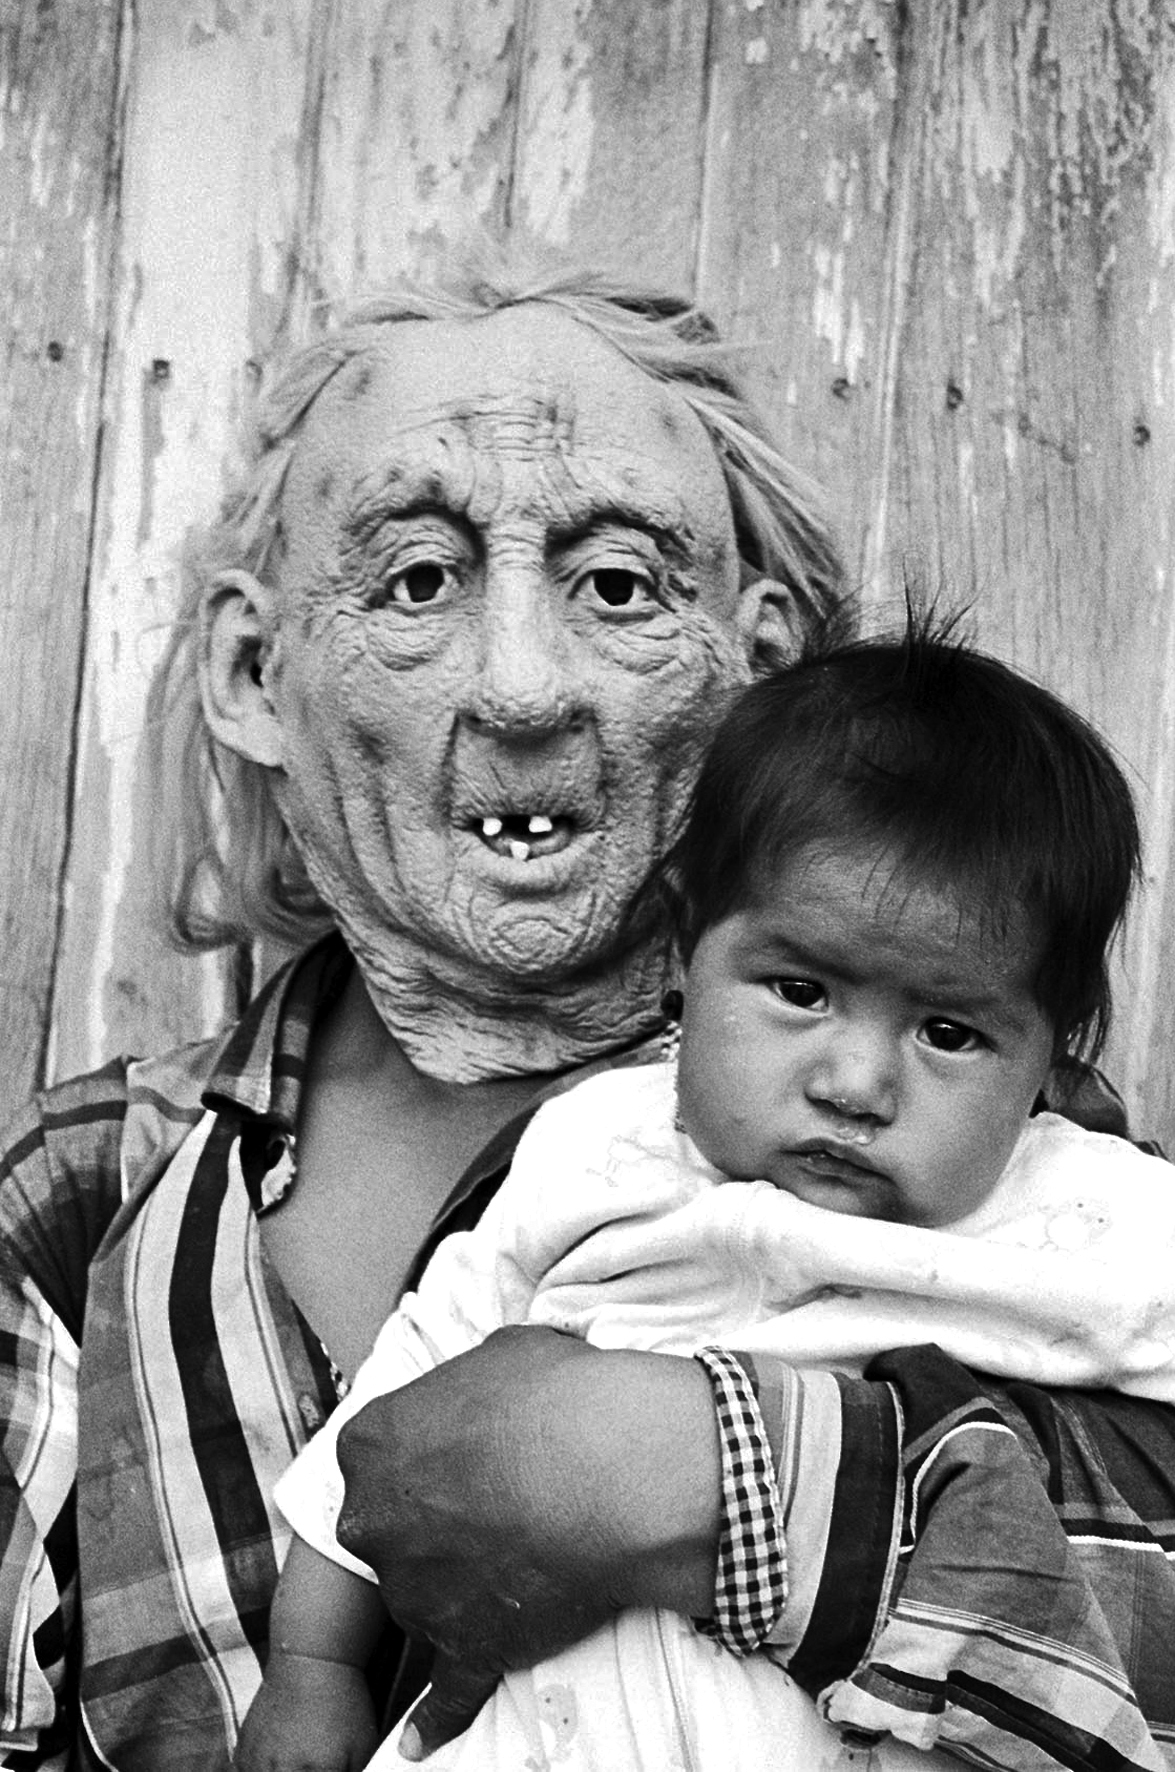 Joel Orozco, Beyond the Mask: Person Wearing Mask Holds Child